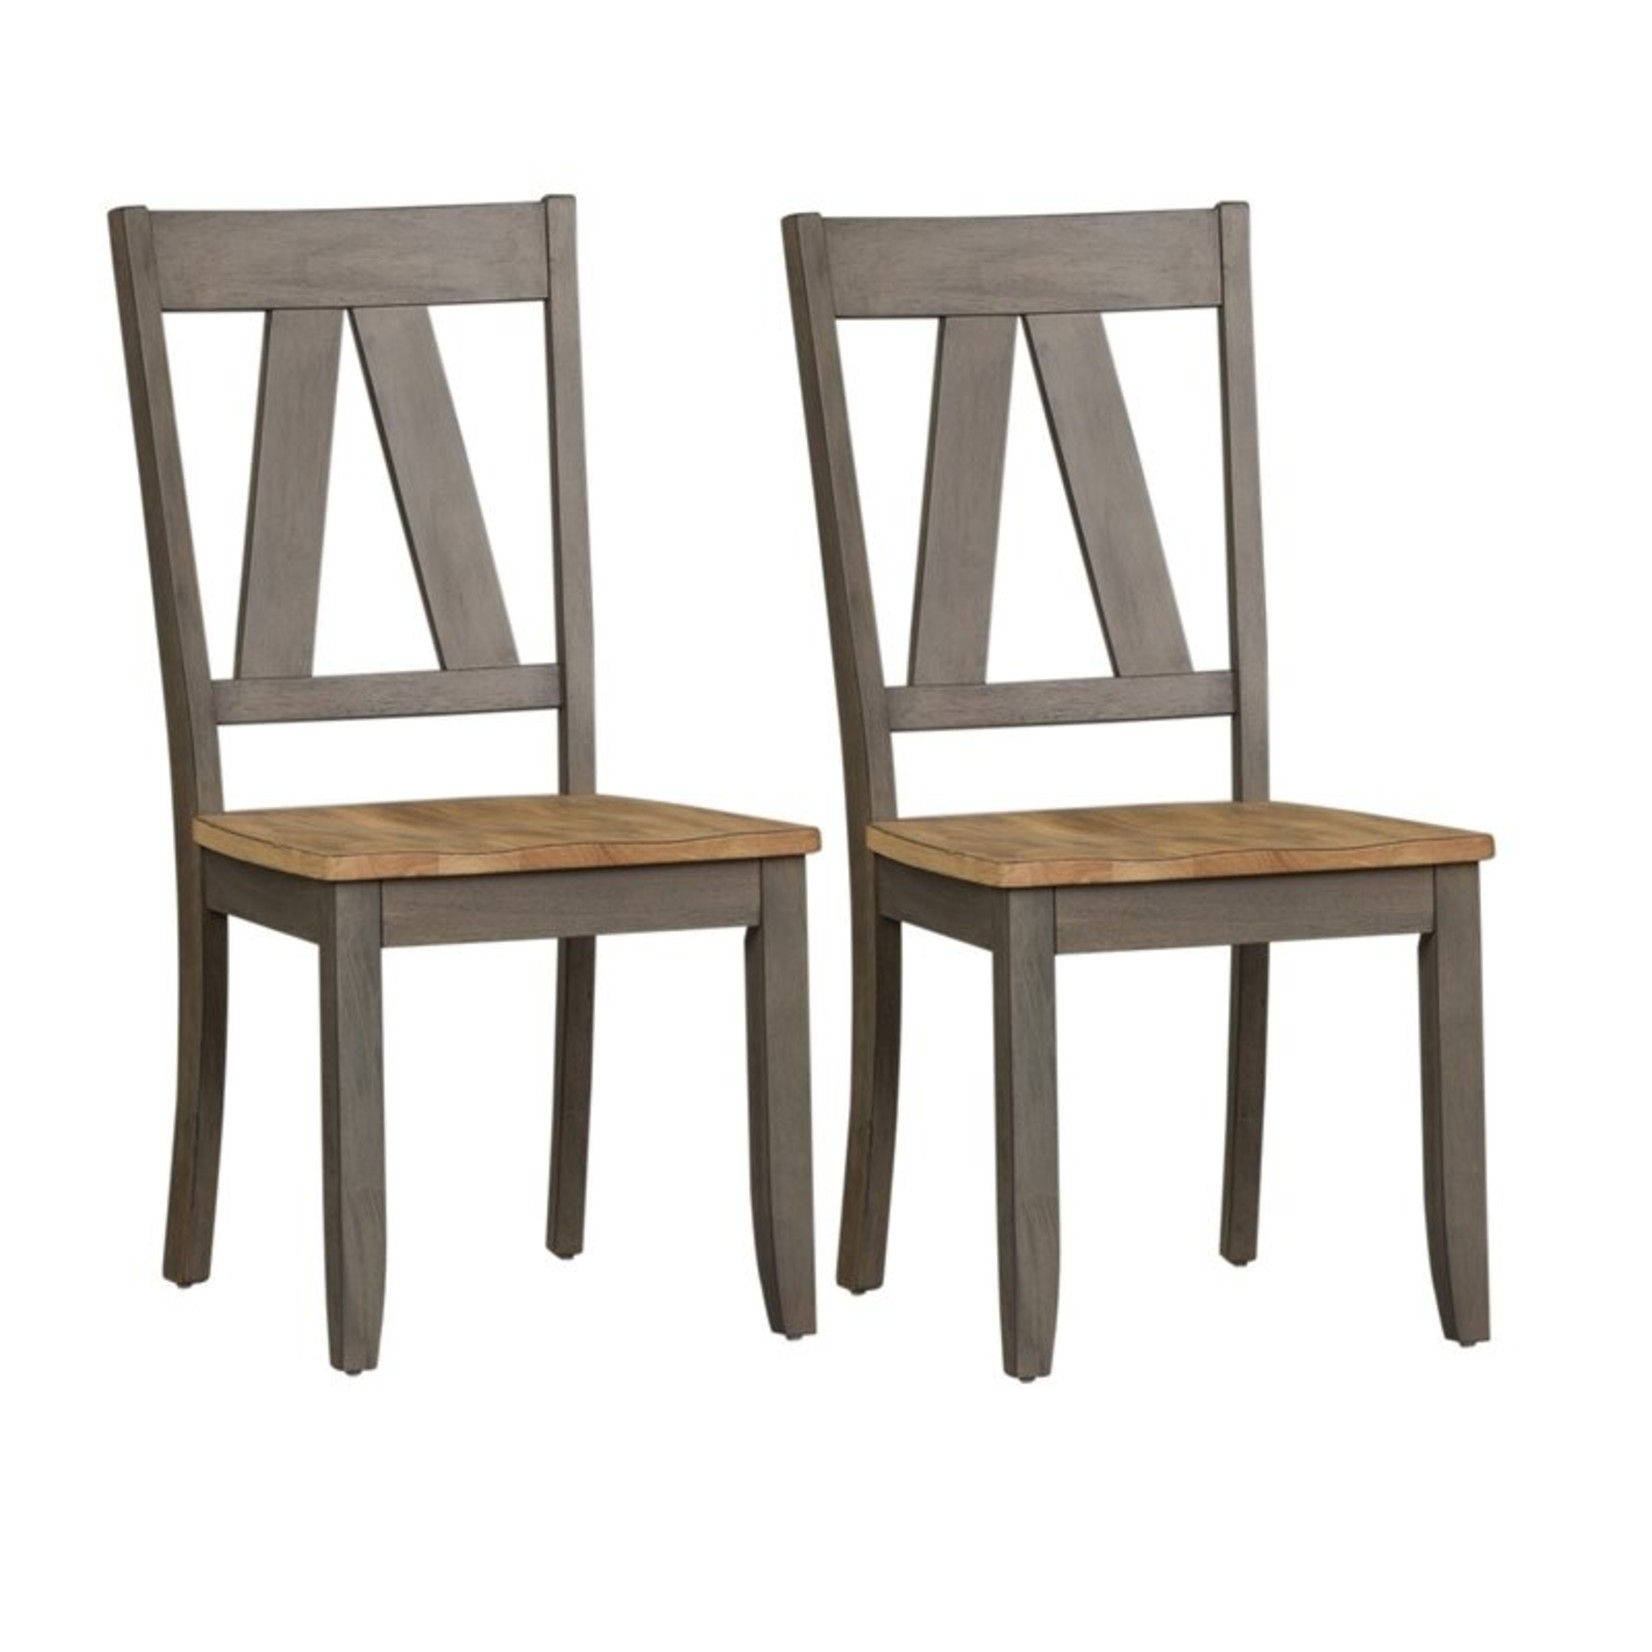 *Kruger Solid Wood Cross Back Side Chairs in Light Gray - Set of 2